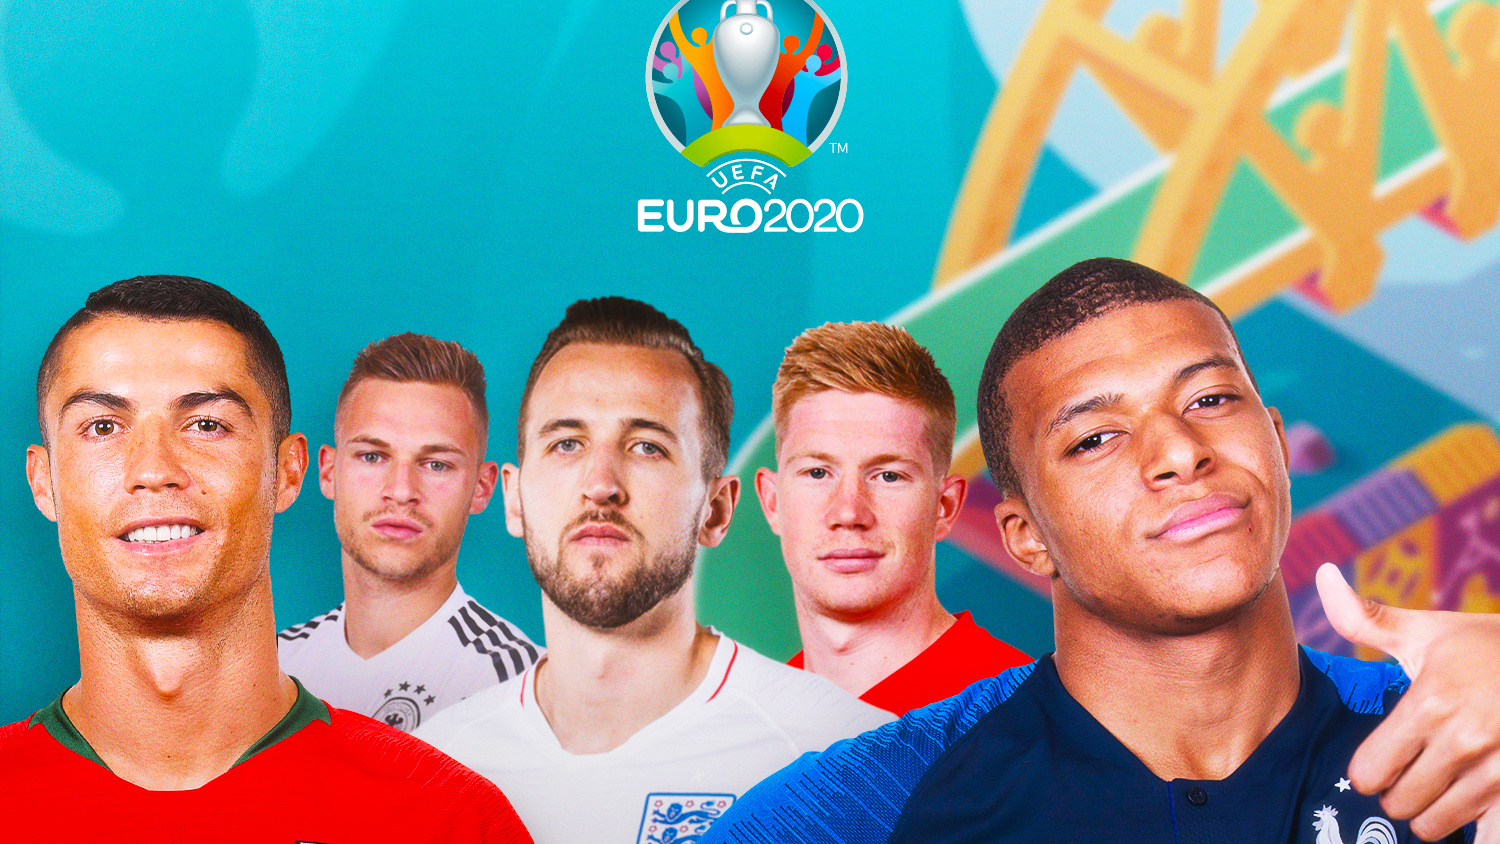 Euro 2020: What you need to know about Europe's massive international soccer tournament